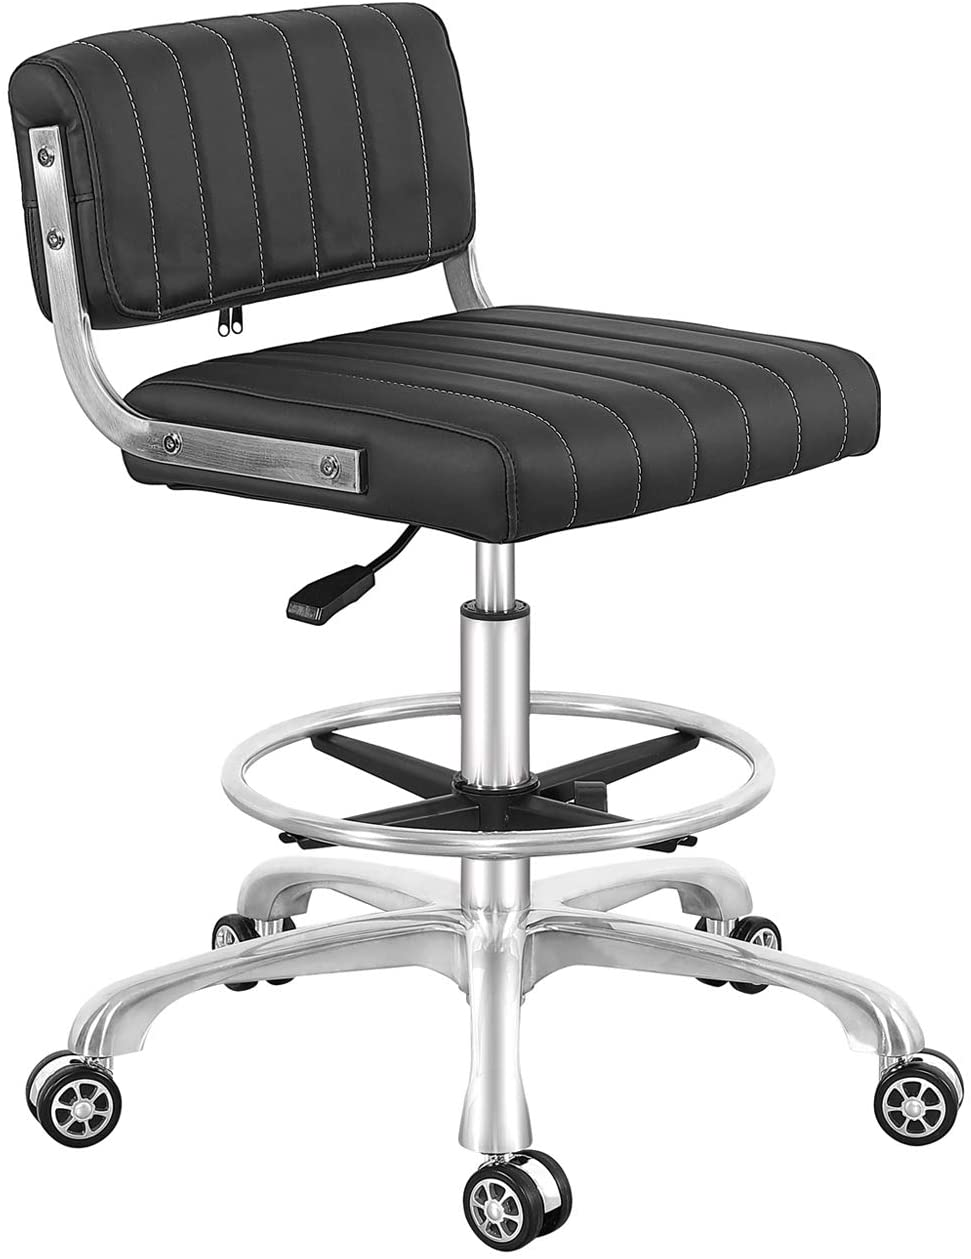 Rolling Swivel Drafting Chair Adjustable Heavy Duty (400lbs) Lumbar Support Task Chair for Home Desk Studio Design Lab (Black) (Square Cushion)